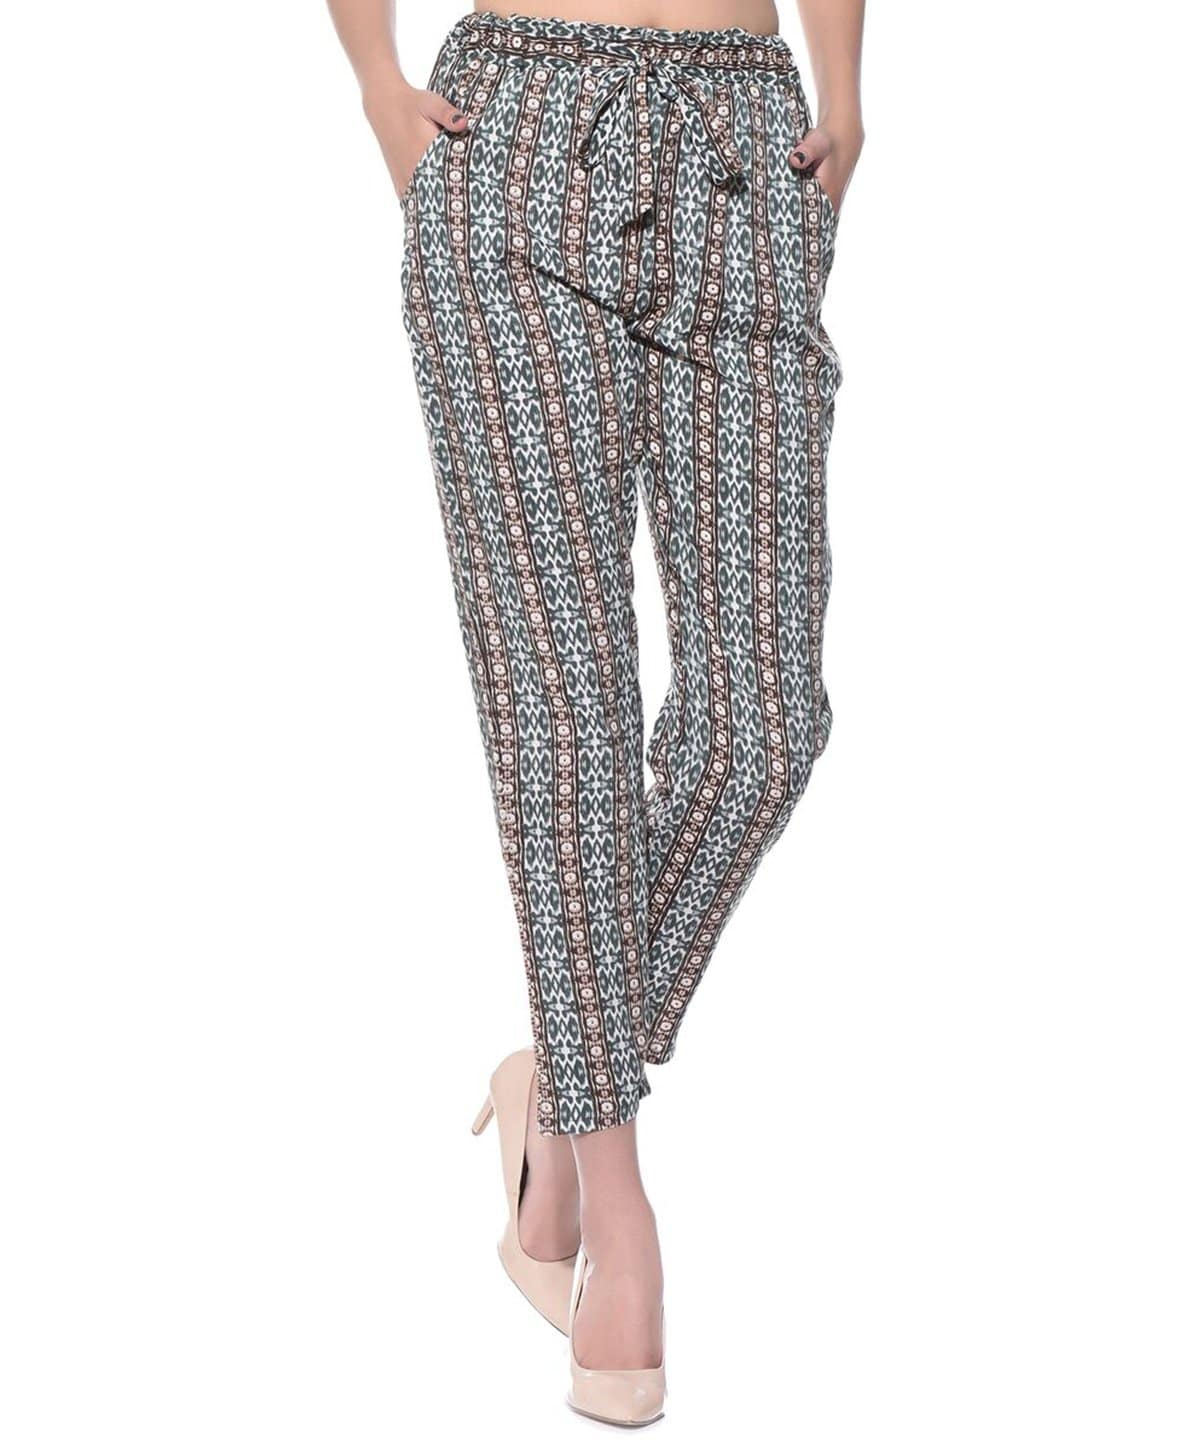 Uptownie Blue Black Vertical Print Trousers 1 clearance sale